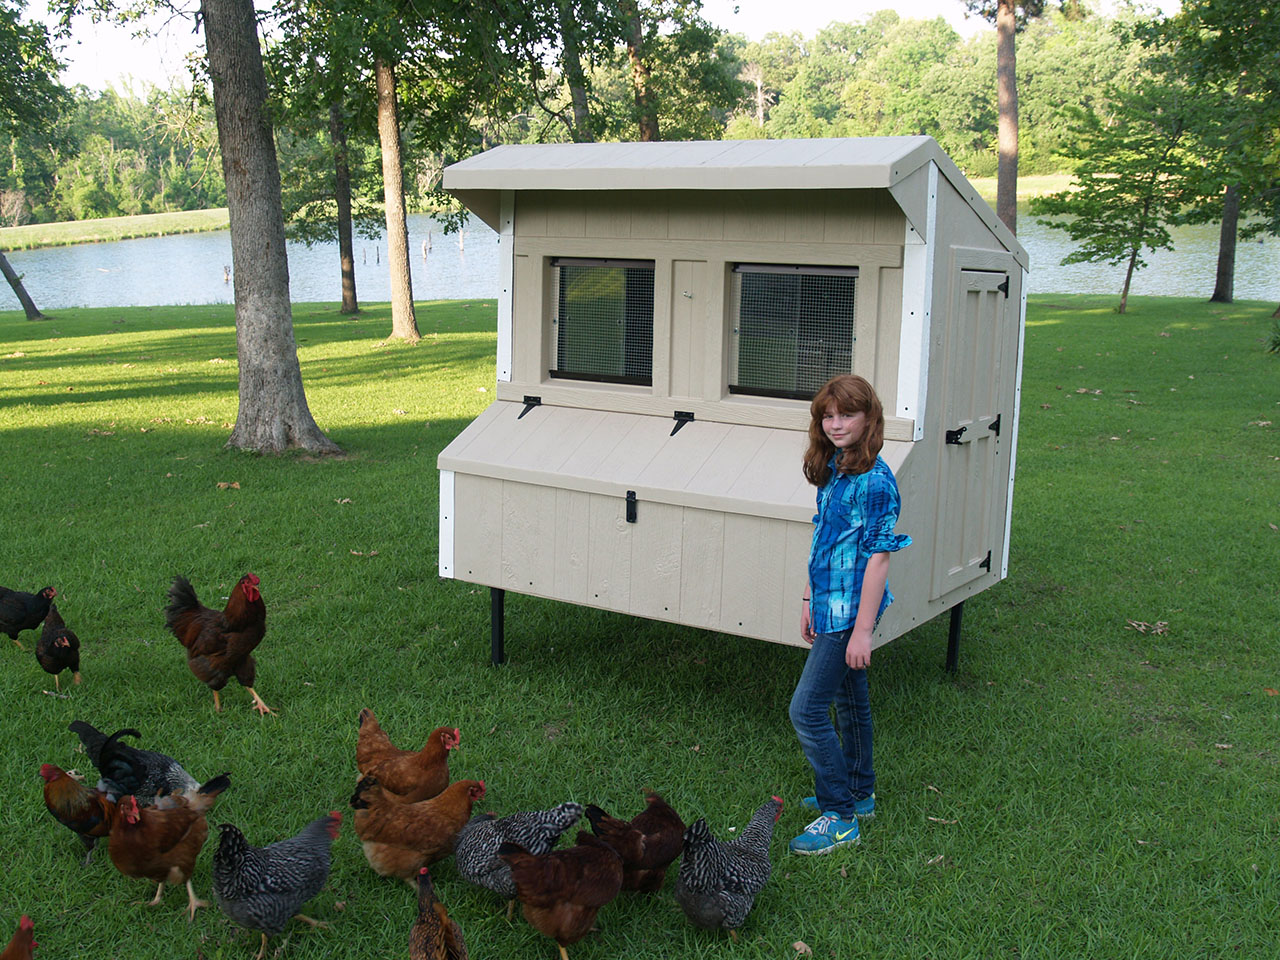 Eggstreme chicken coops 6 39 x 5 39 traditional fiberglass for Chicken coop size for 6 chickens